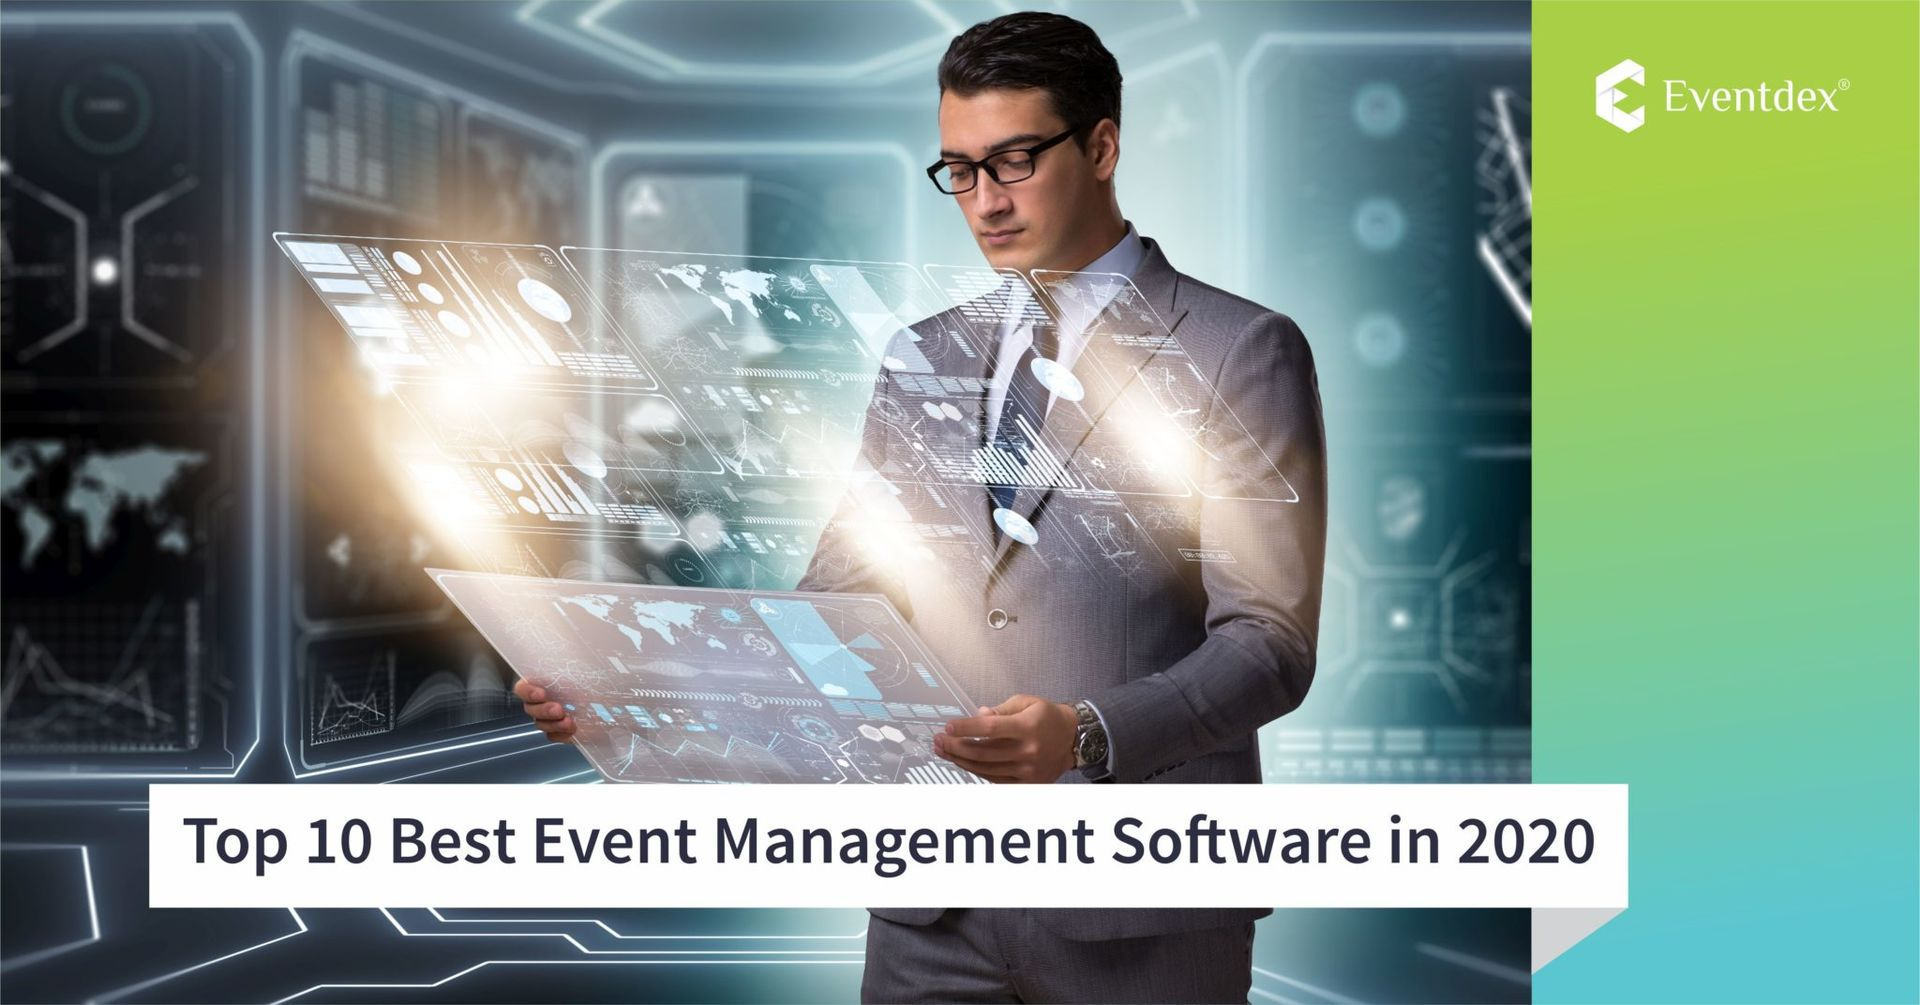 Top 10 Best Event Management Software in 2020